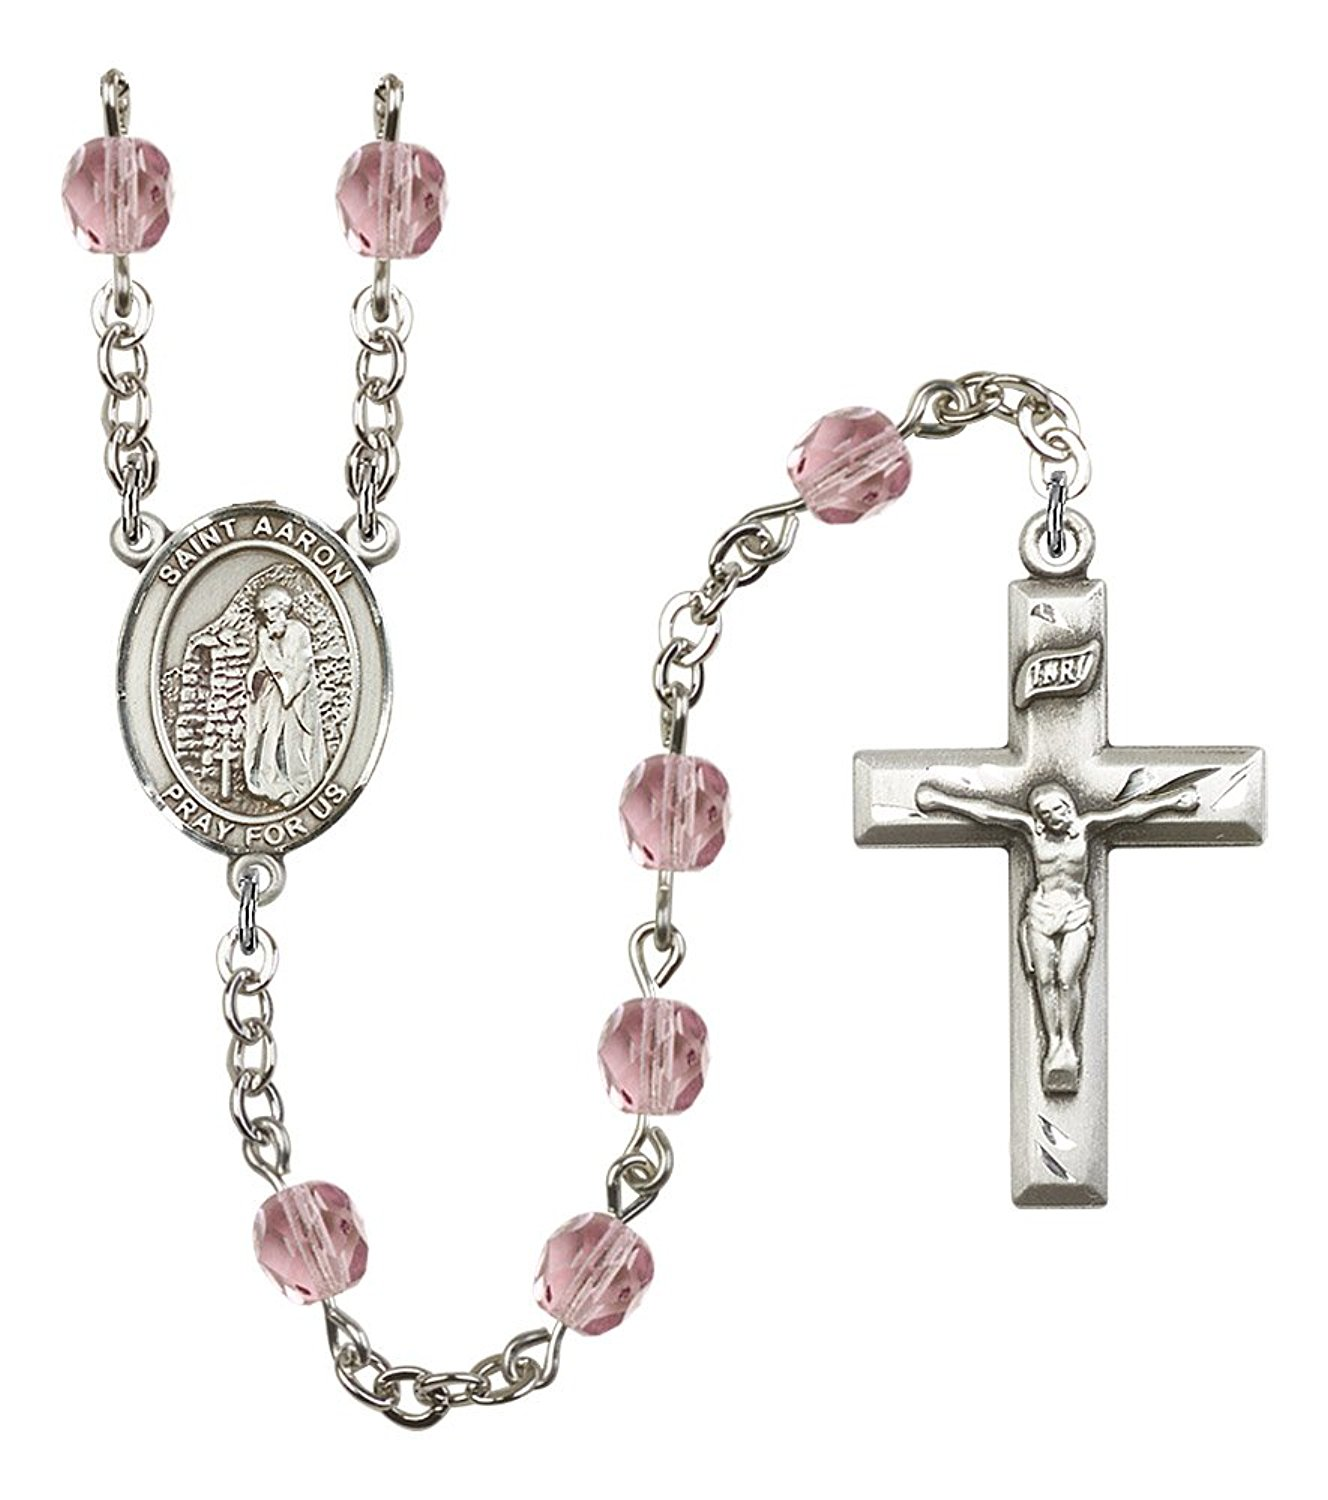 Silver Finish St. Aaron Rosary with 6mm Light Amethyst Color Fire Polished Beads, St. Aaron Center, and 1 3/8 x 3/4 inch Crucifix, Gift Boxed